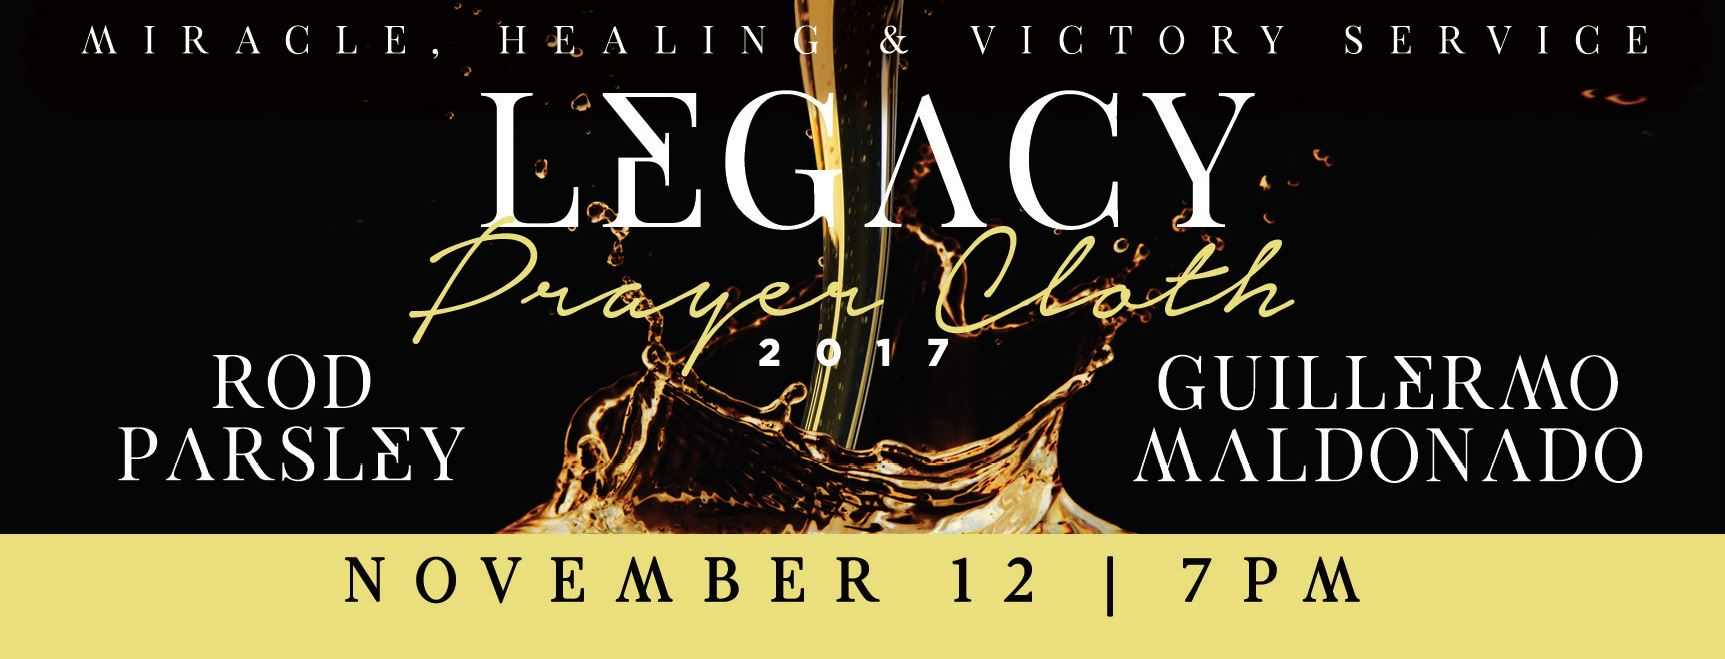 Miracle, Healing & Victory Service | Legacy Prayer Cloth 2017 | Rod Parsley and Guillermo Maldonado | November 12, 7pm